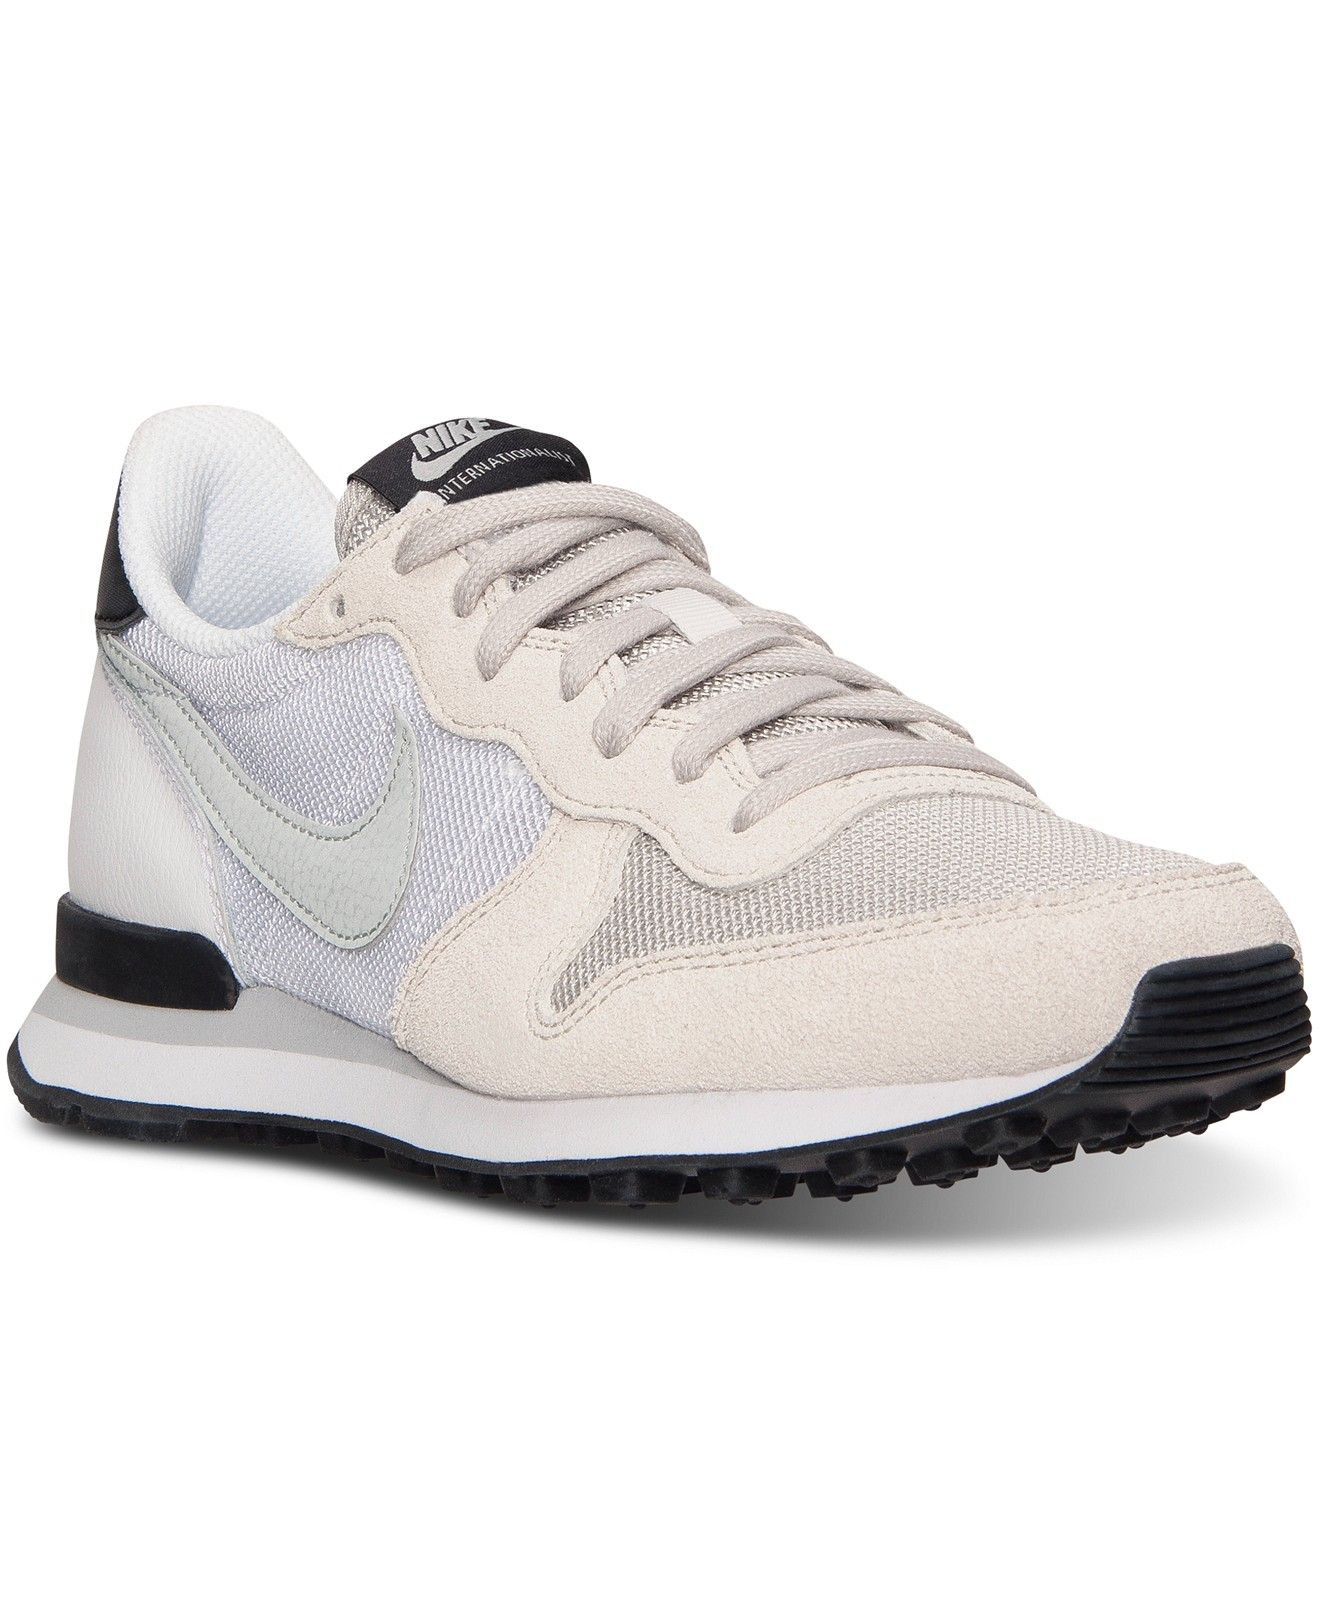 buy online b416e f7736 Nike Women s Internationalist Casual Sneakers from Finish Line - Finish  Line Athletic Shoes - Shoes - Macy s